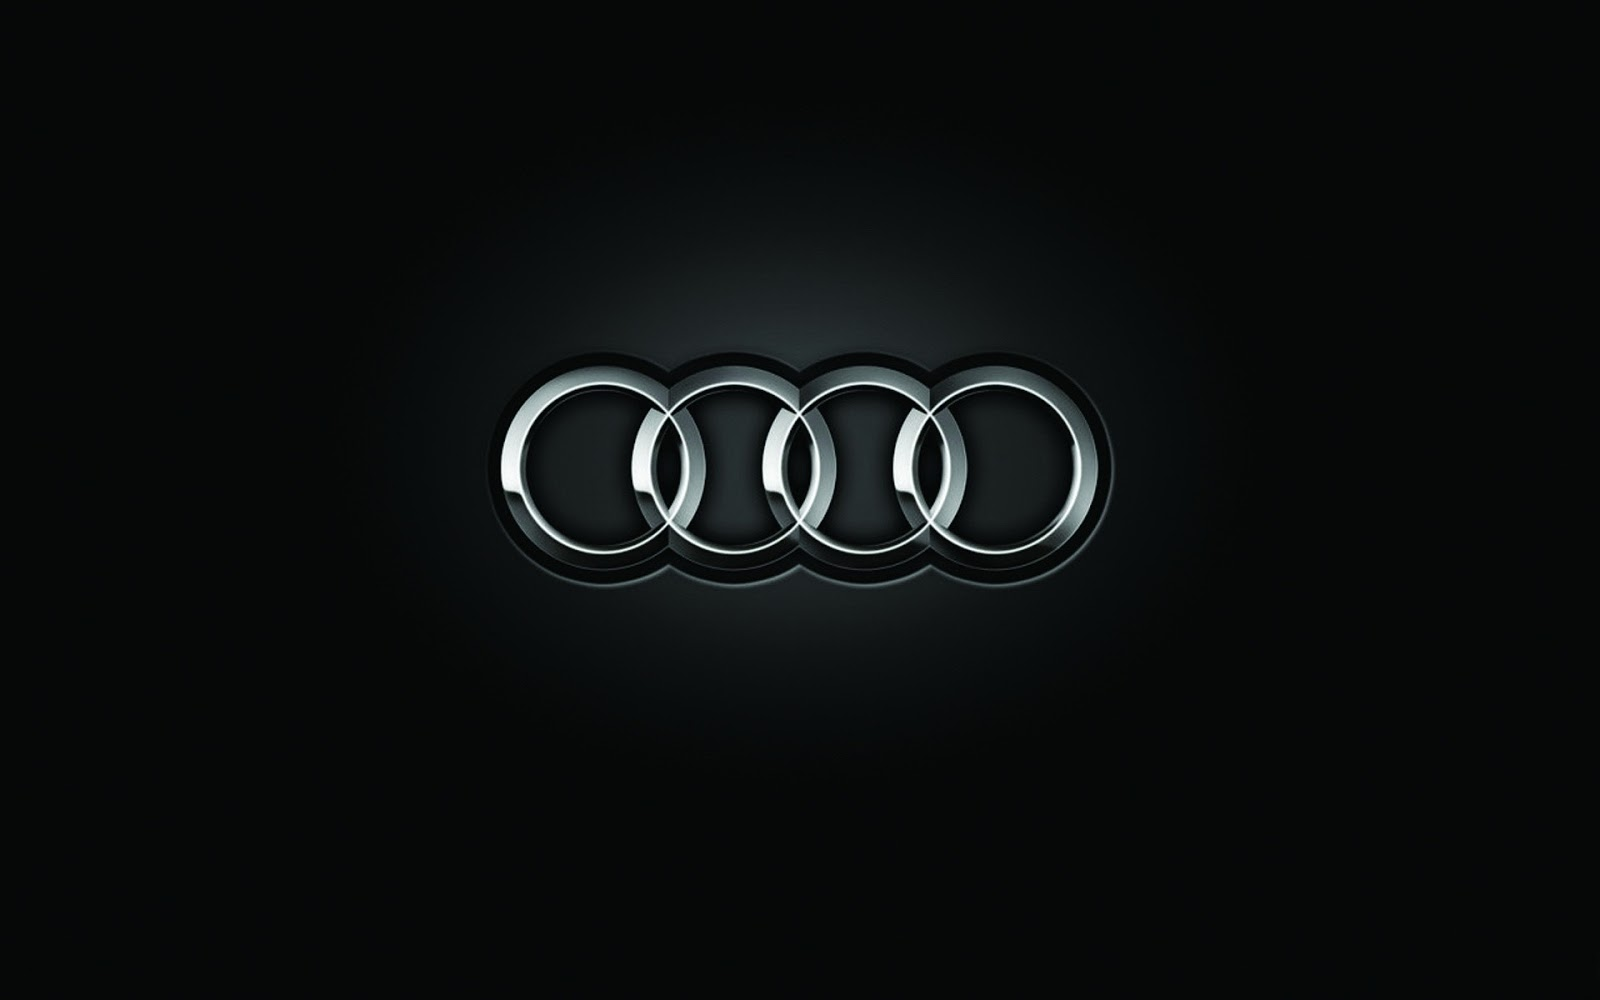 Gmc Logo Wallpaper Audi Car Symbol Meaning And History